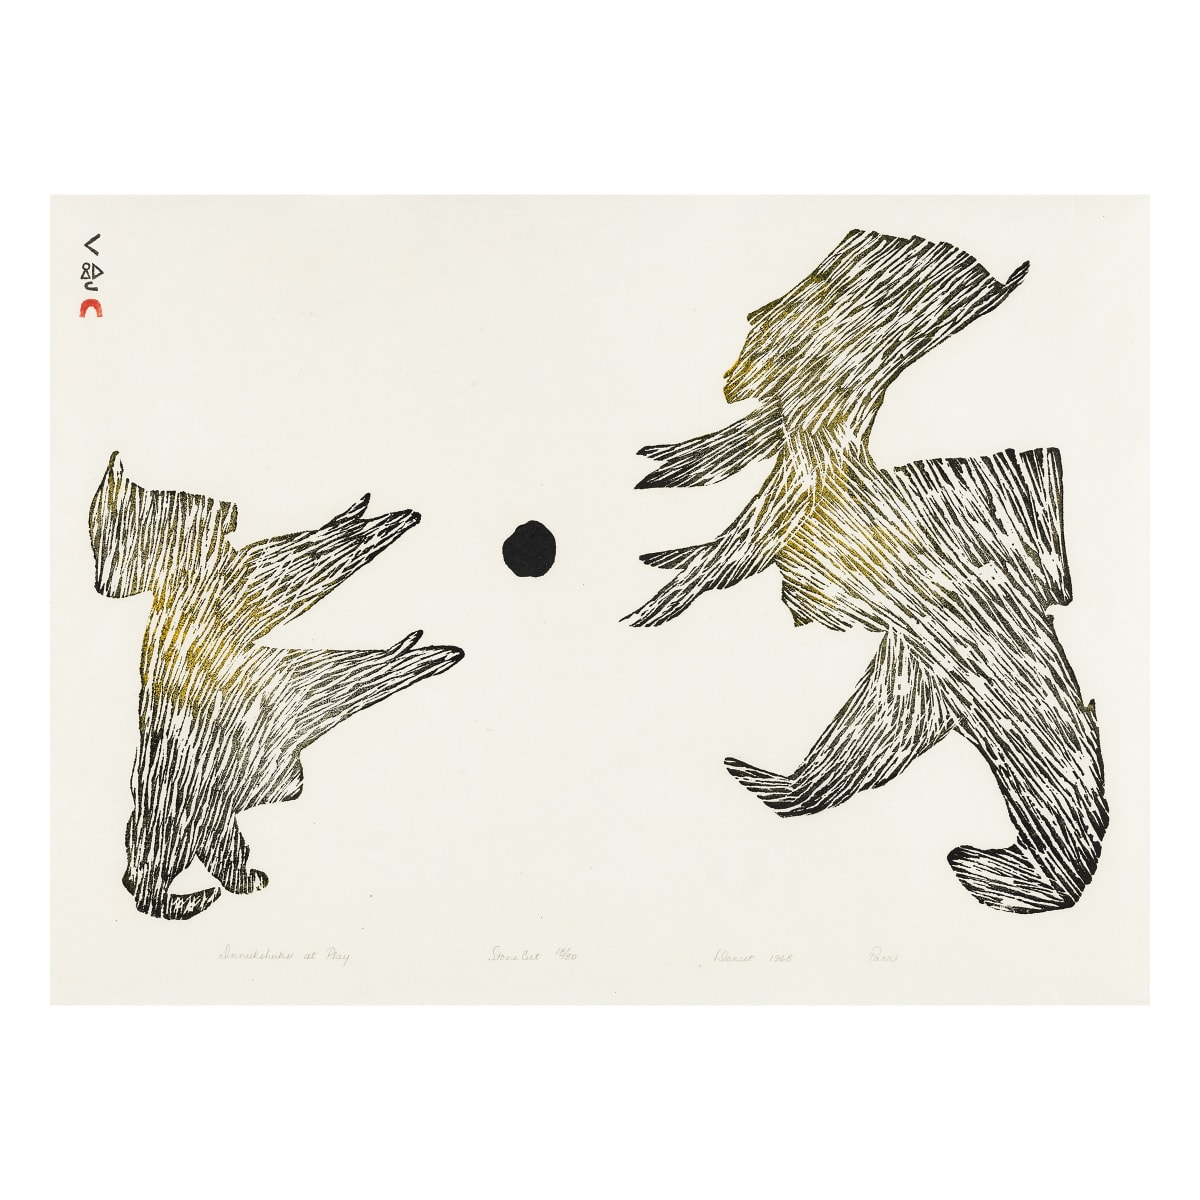 PARR (1893-1969) Kinngait (Cape Dorset) Innukshuks at Play, 1968 REALIZED: $2,400